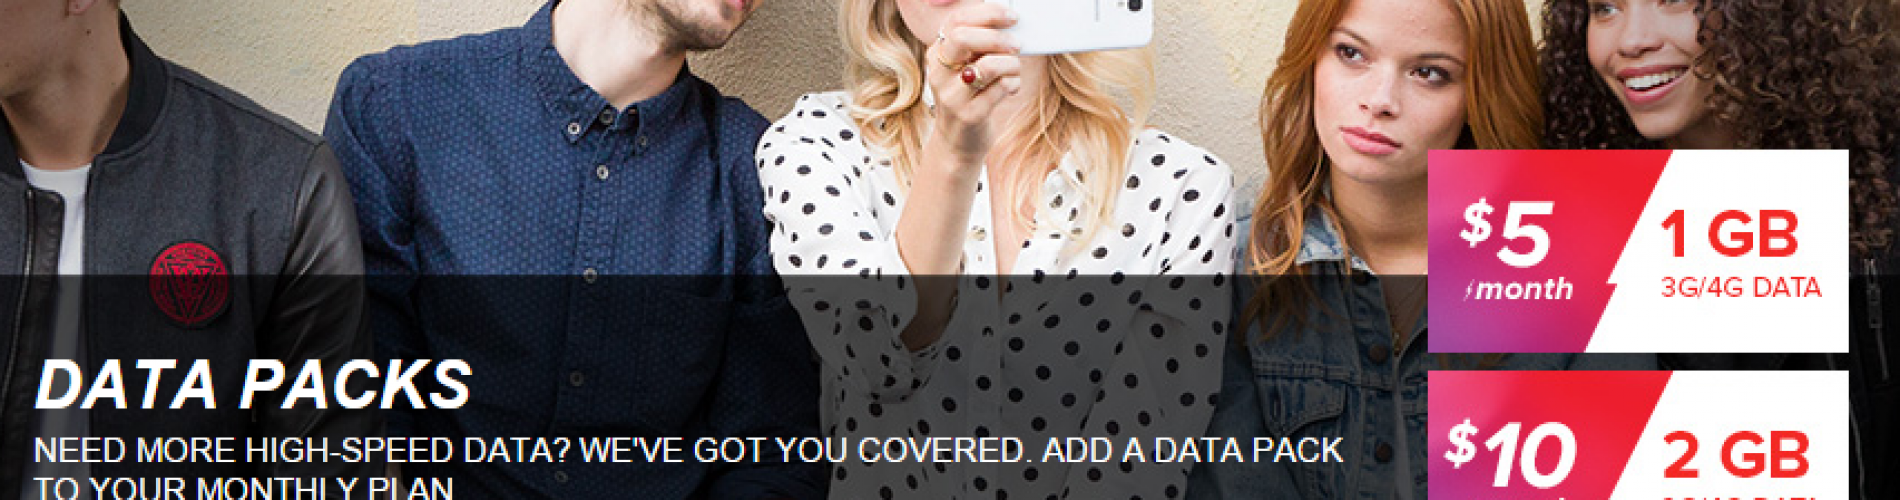 Boost Mobile and Virgin Mobile offering data add-on packages